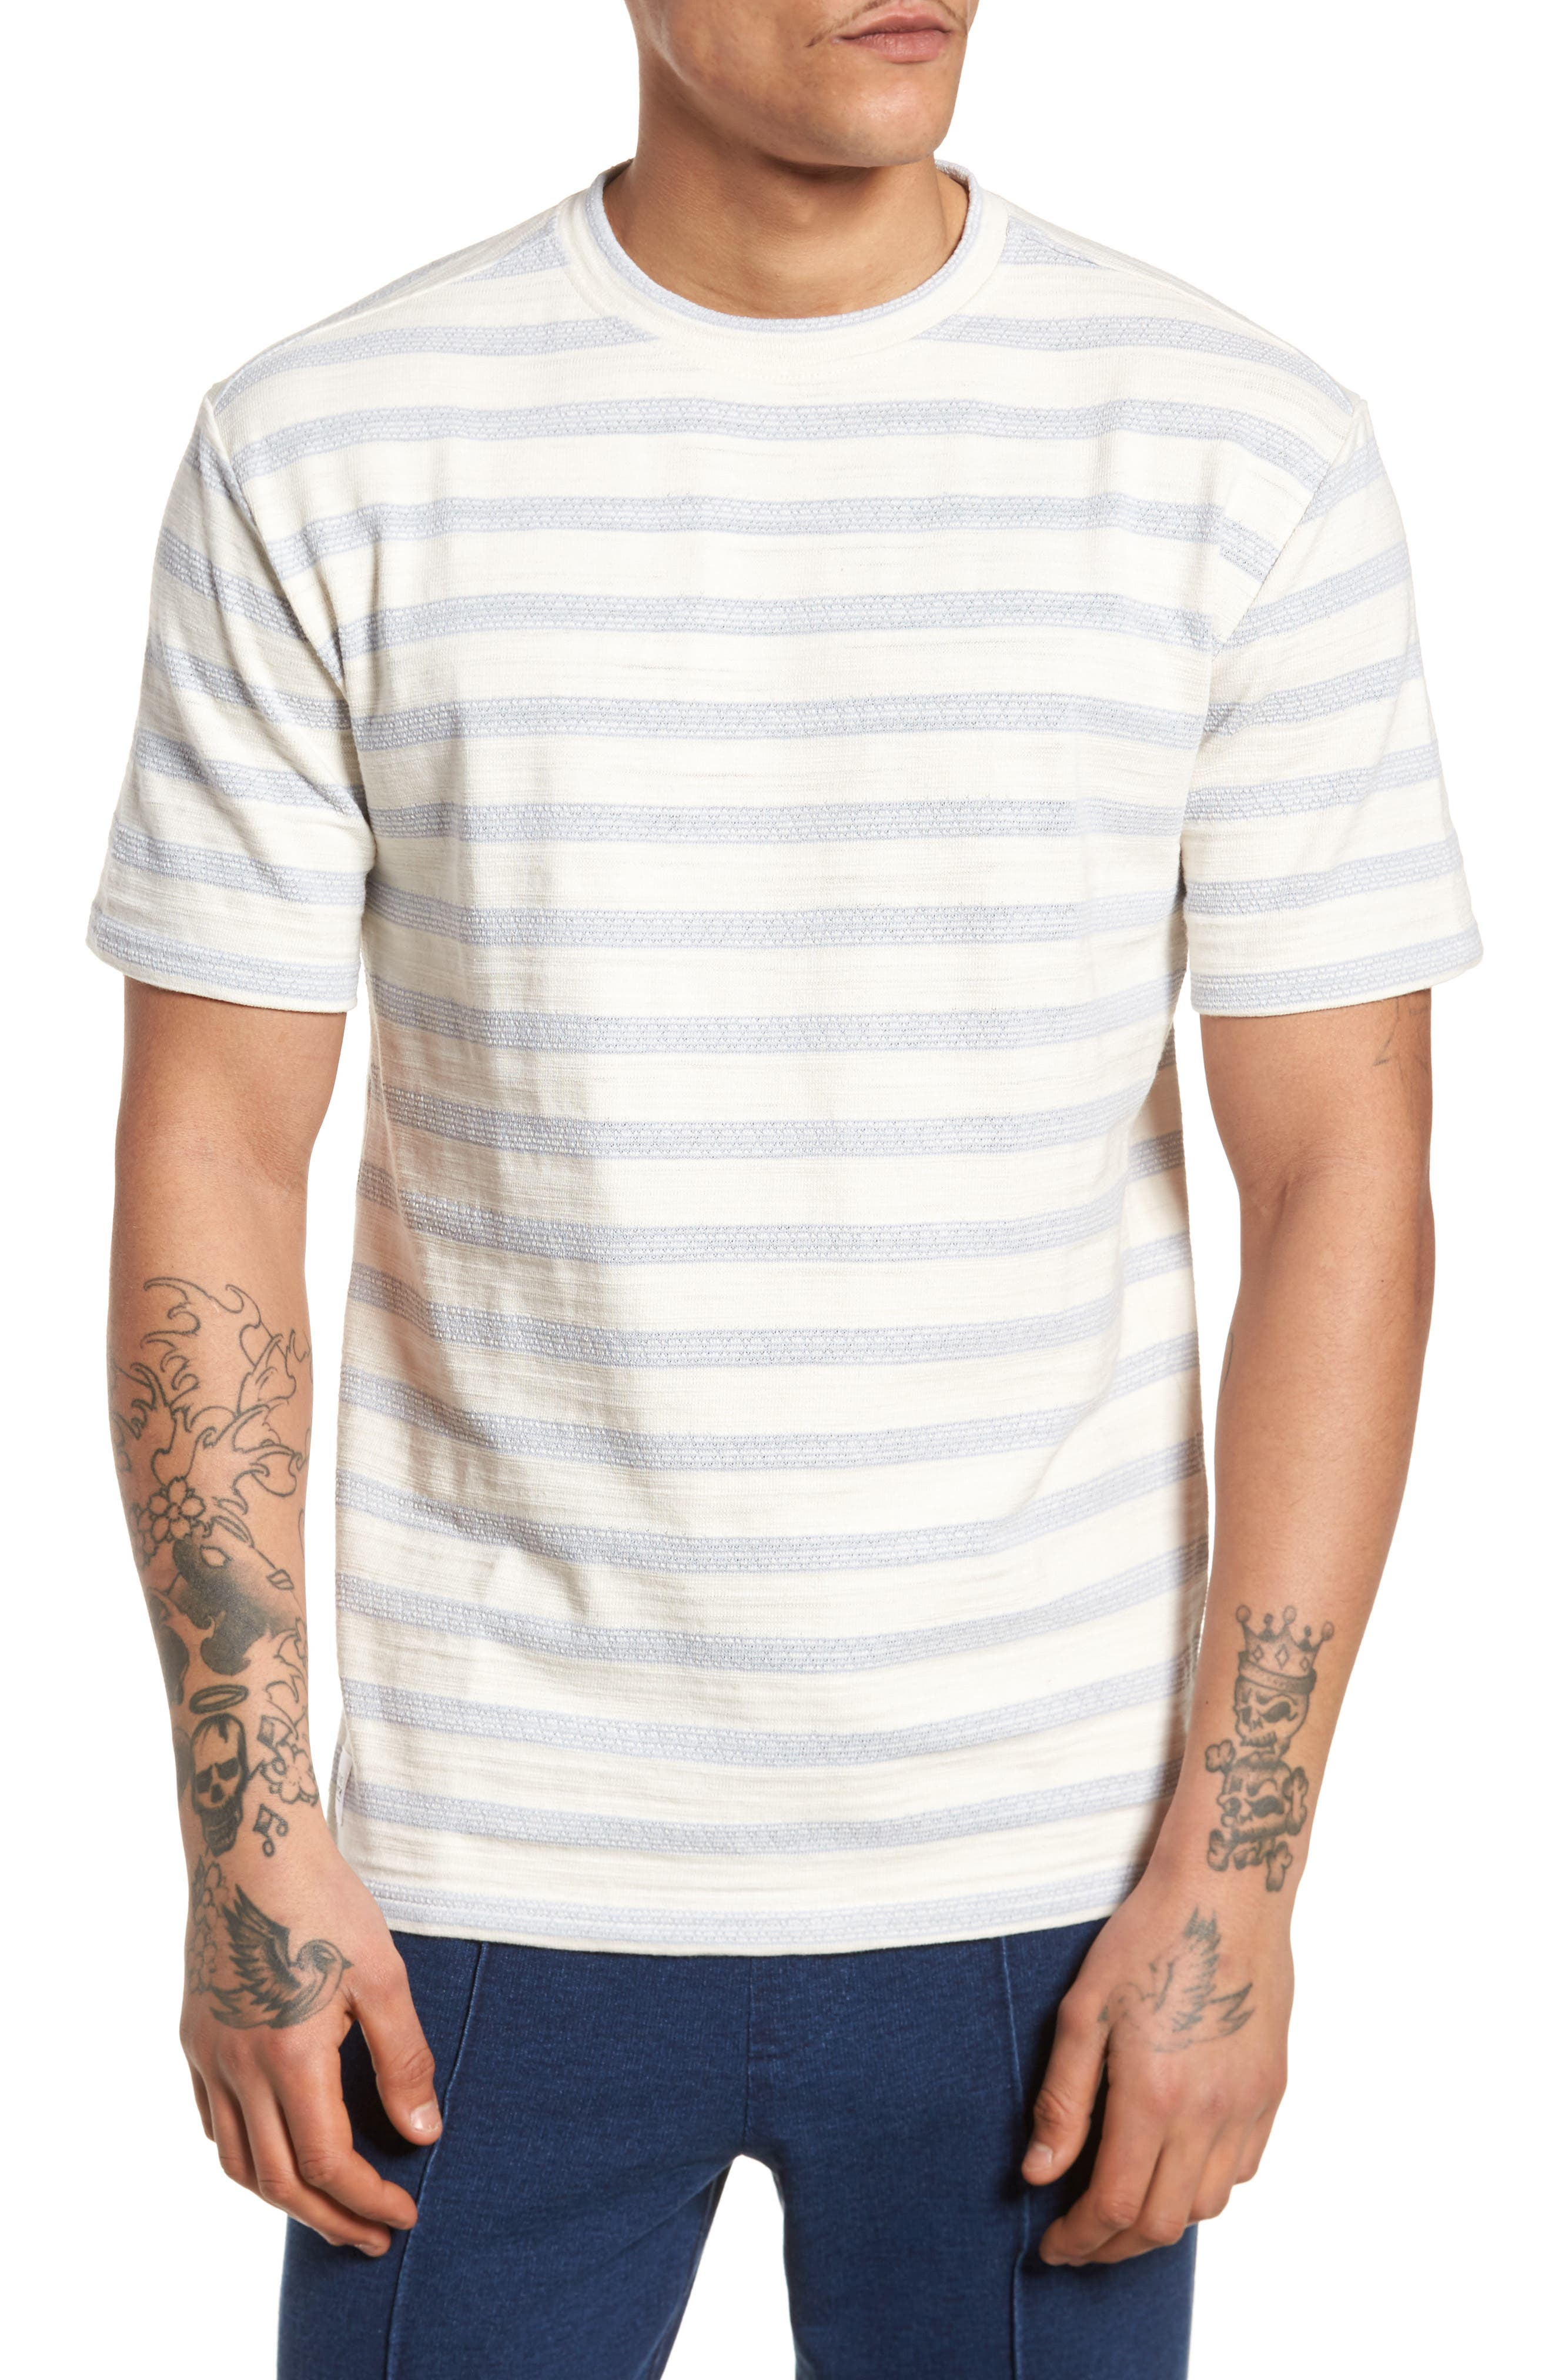 Waves T-Shirt,                         Main,                         color, Off White